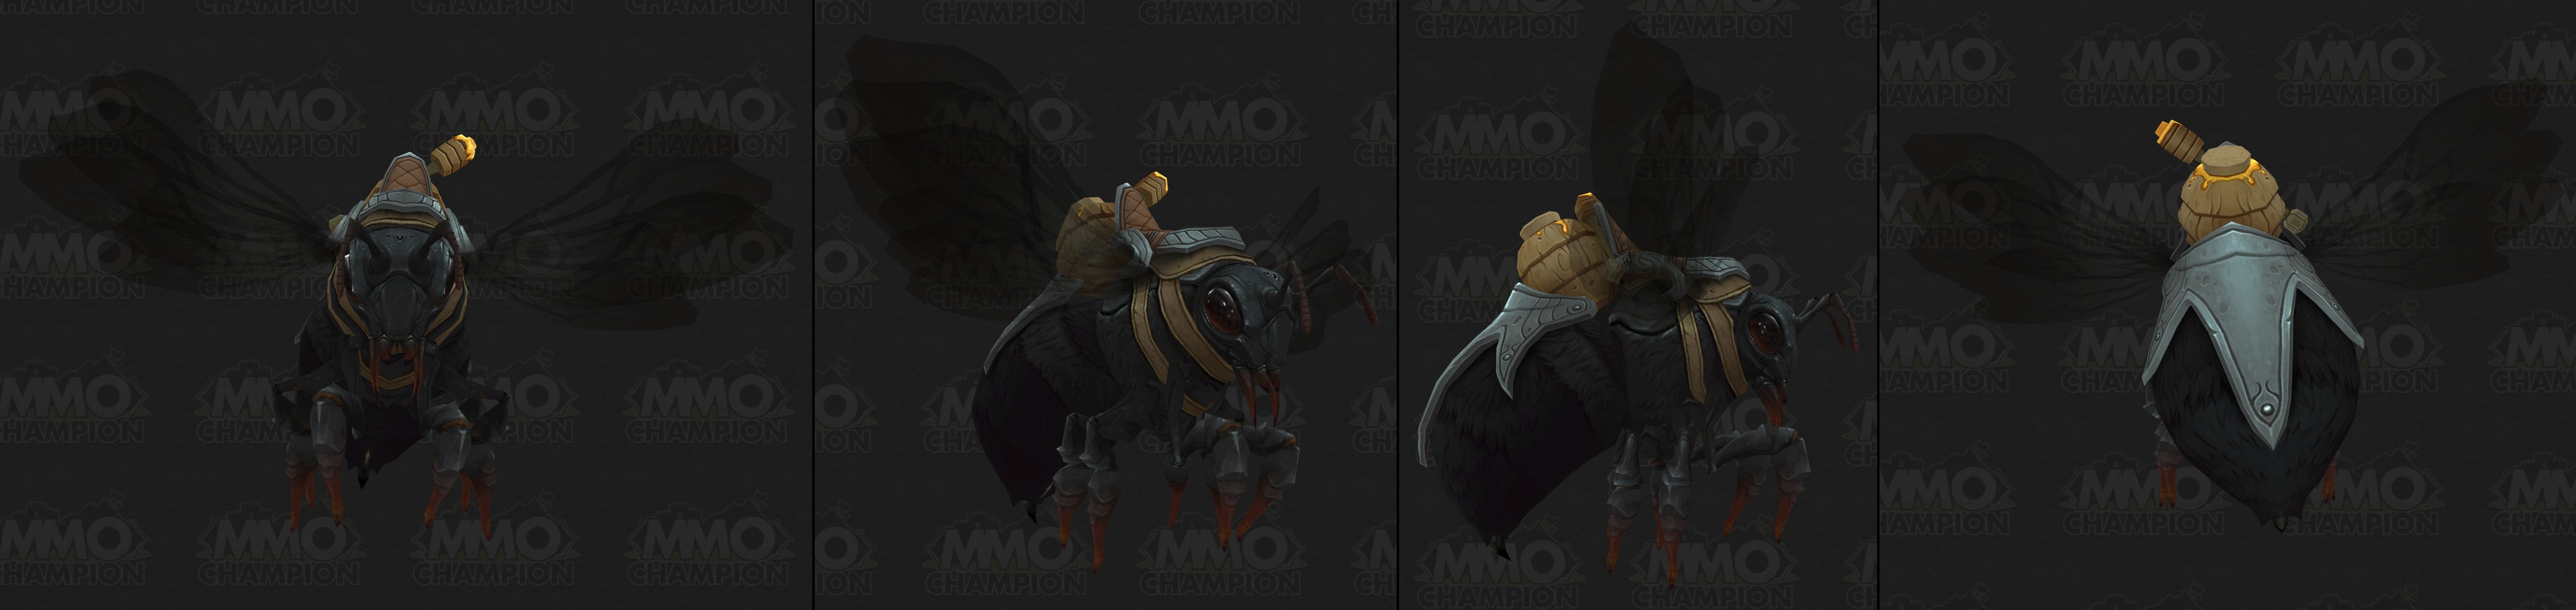 Patch 8 2 5 PTR Development Notes - MMO-Champion